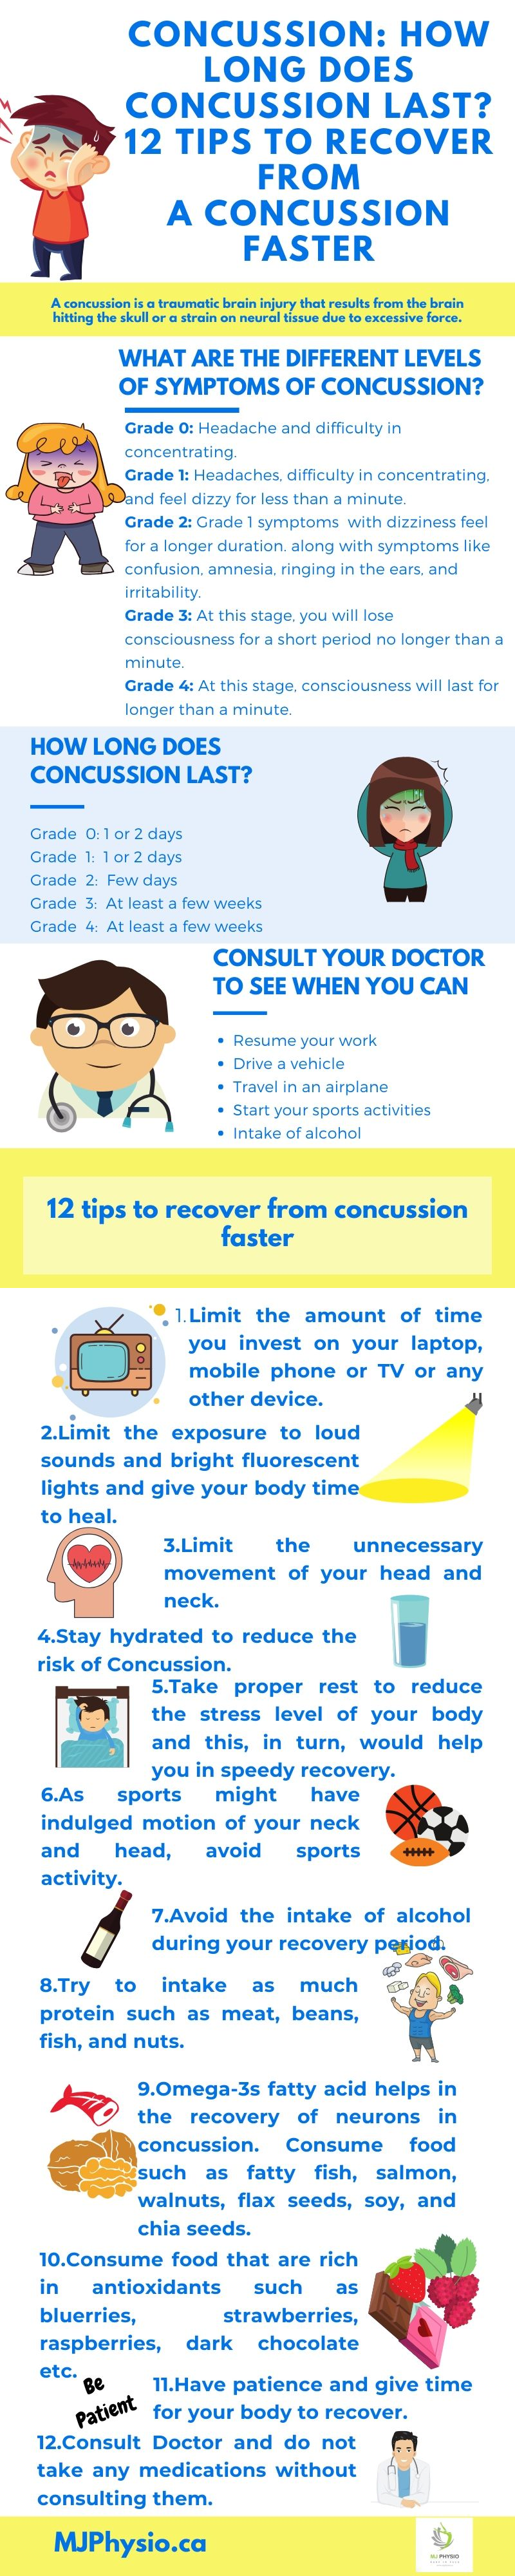 Concussion How Long Does It Last 12 Tips